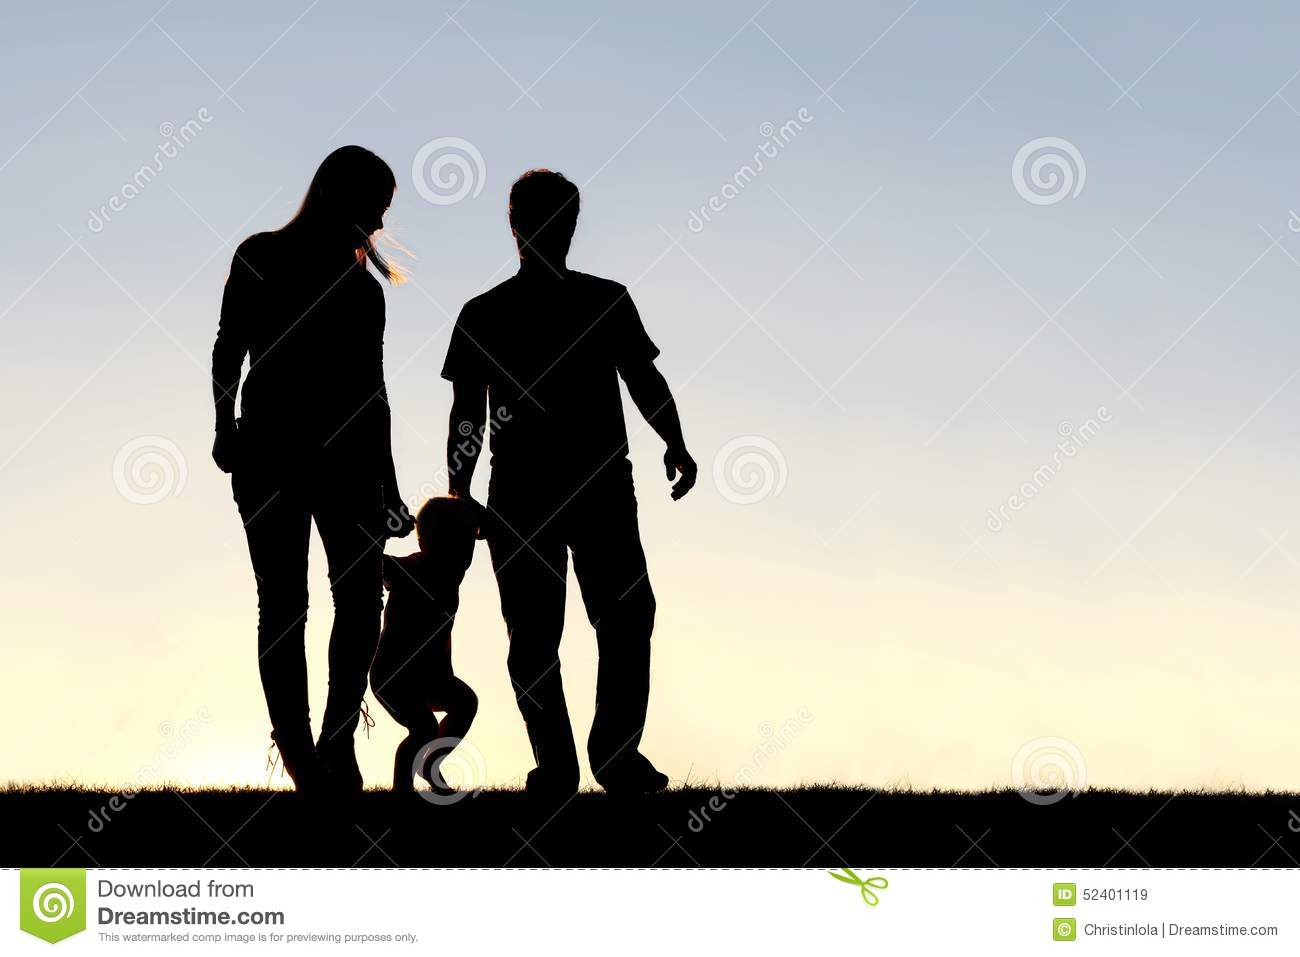 Silhouette Of Family Three People Walking At Sunset Royalty Free Stock Images